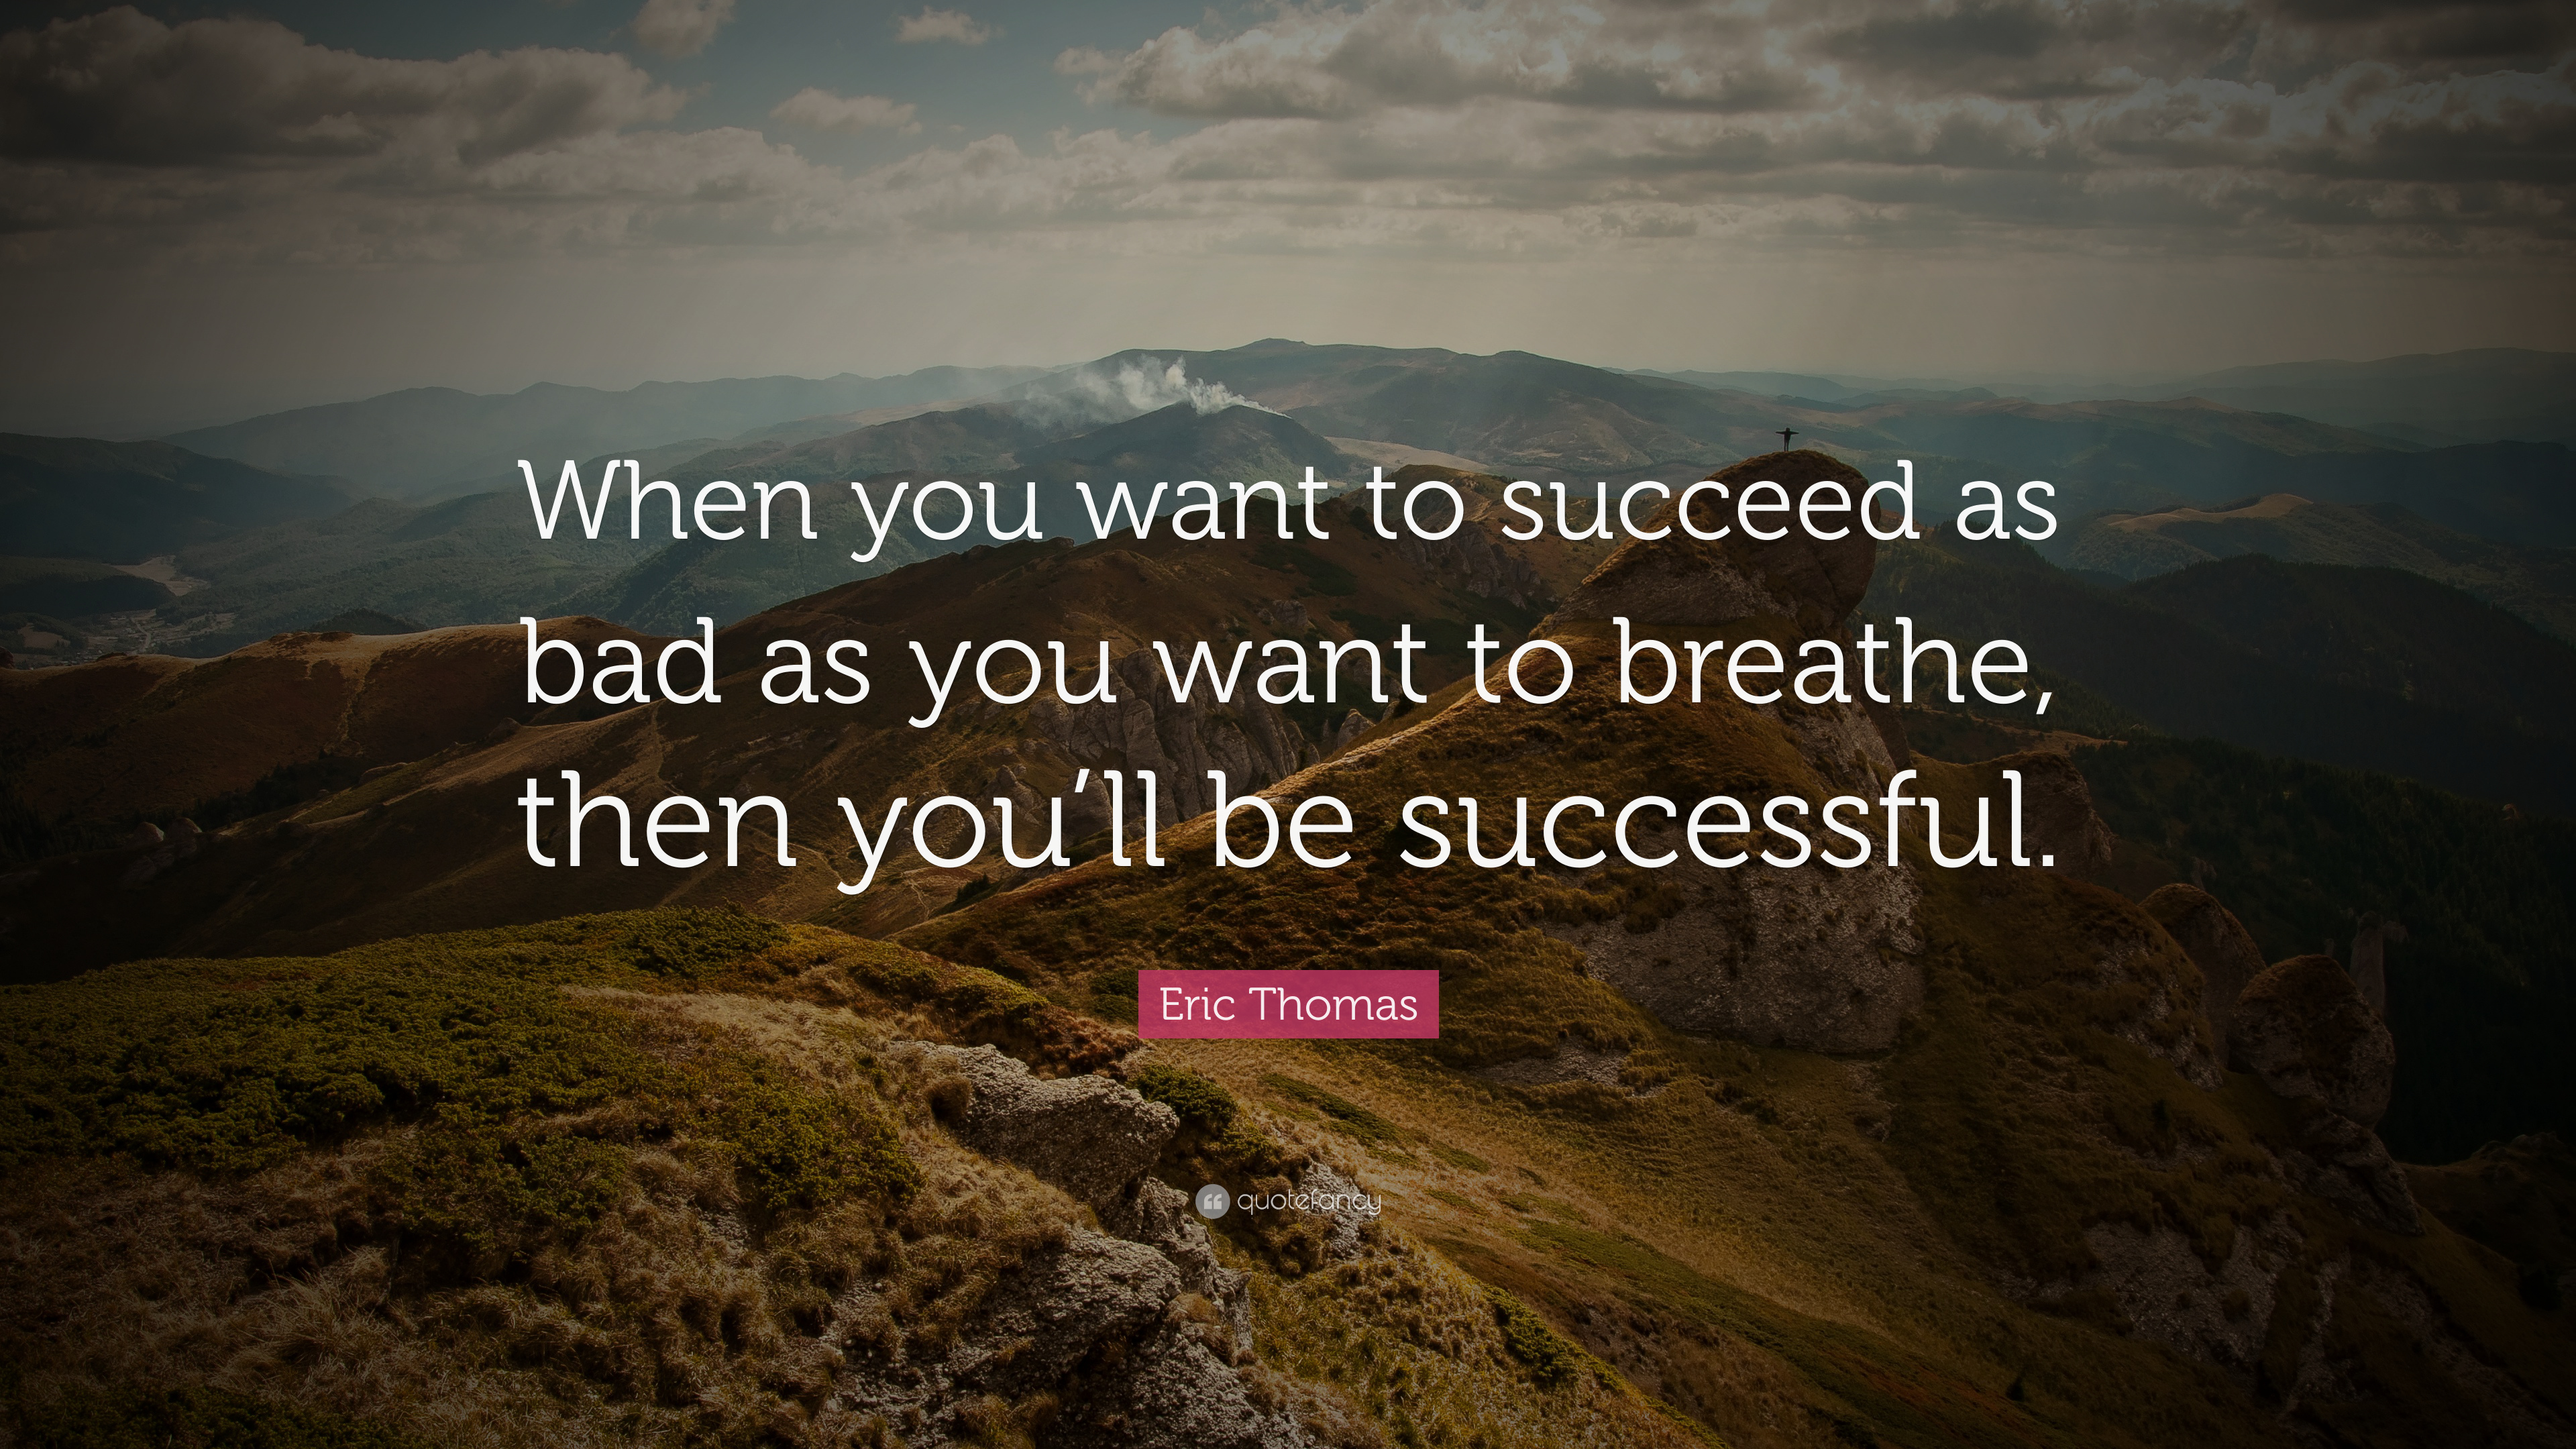 Then Want You Successful Bad Be Breath Succeed Will Want You When You